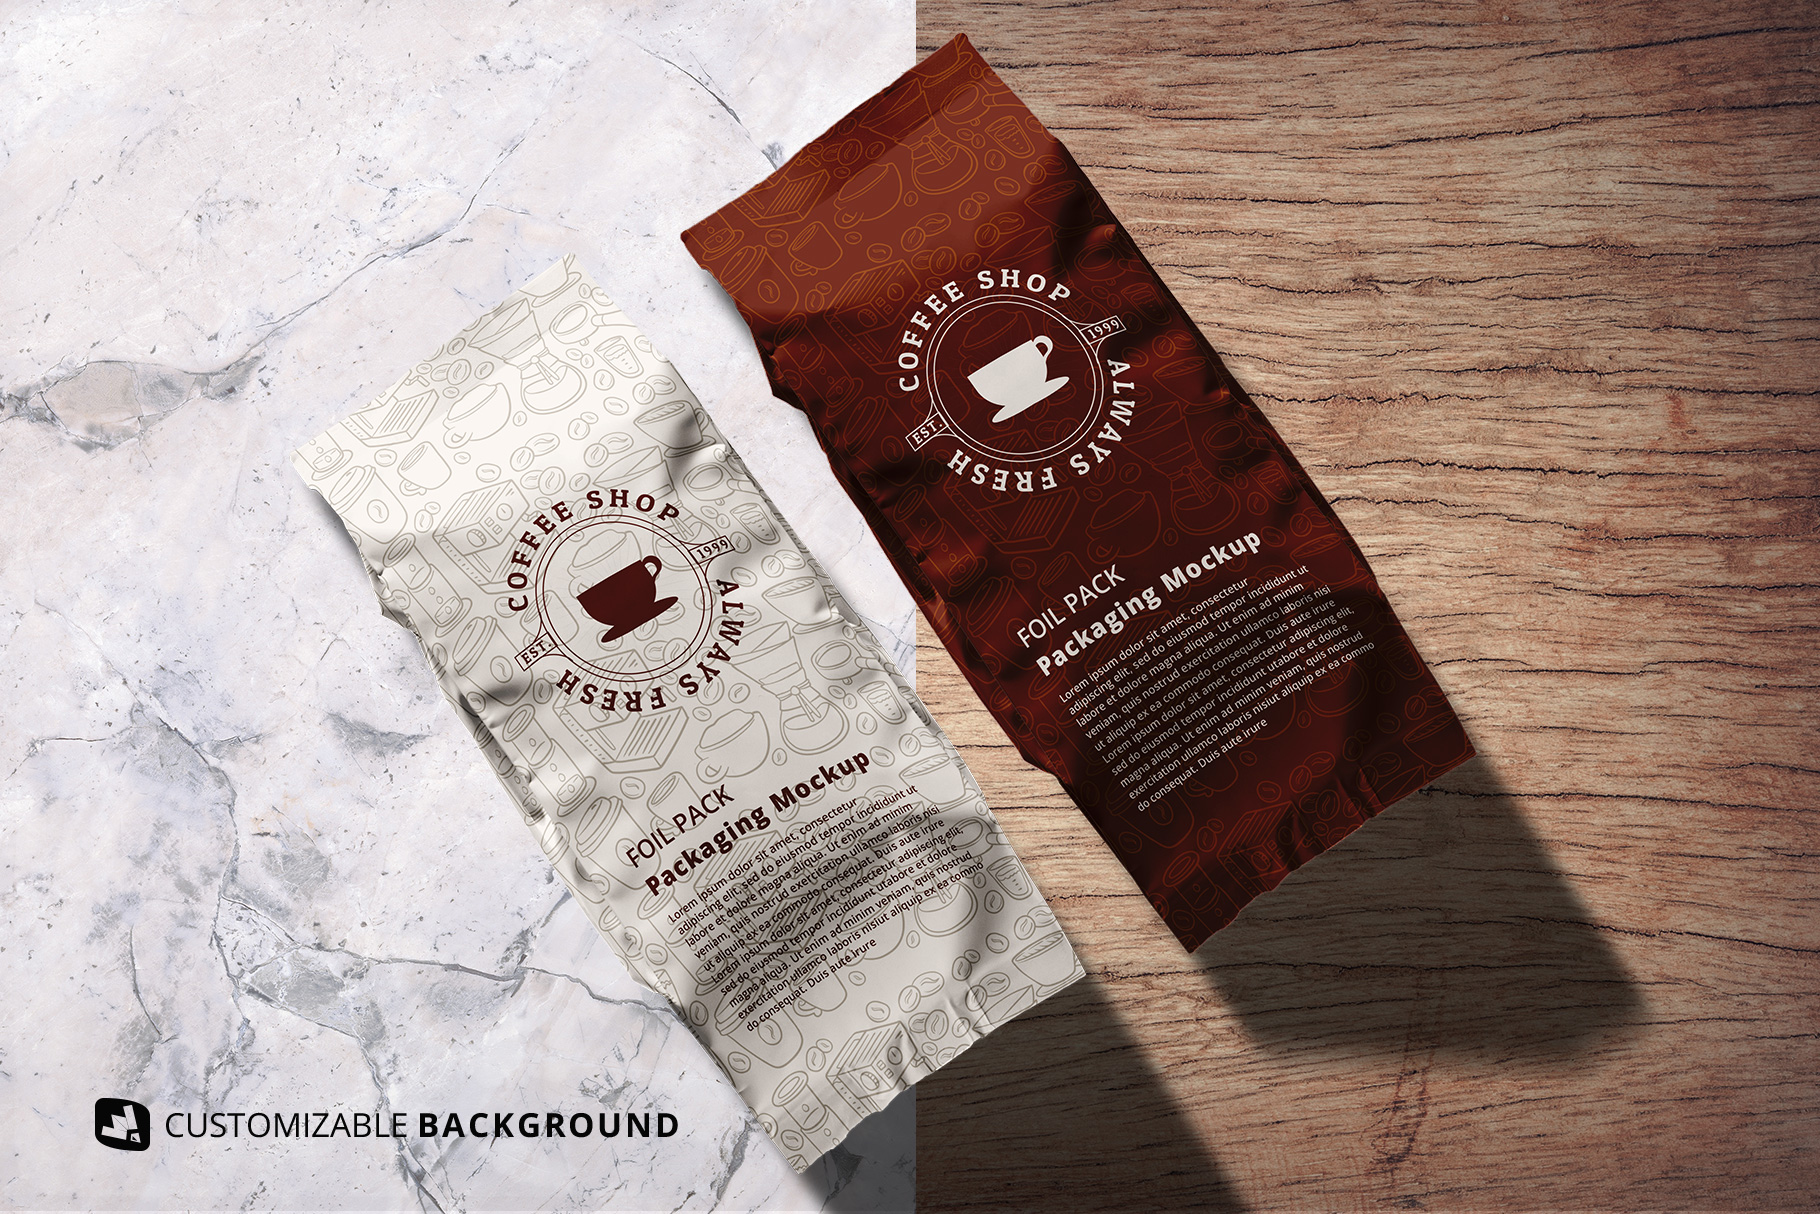 background options of the flat lay foil pouch packaging mockup